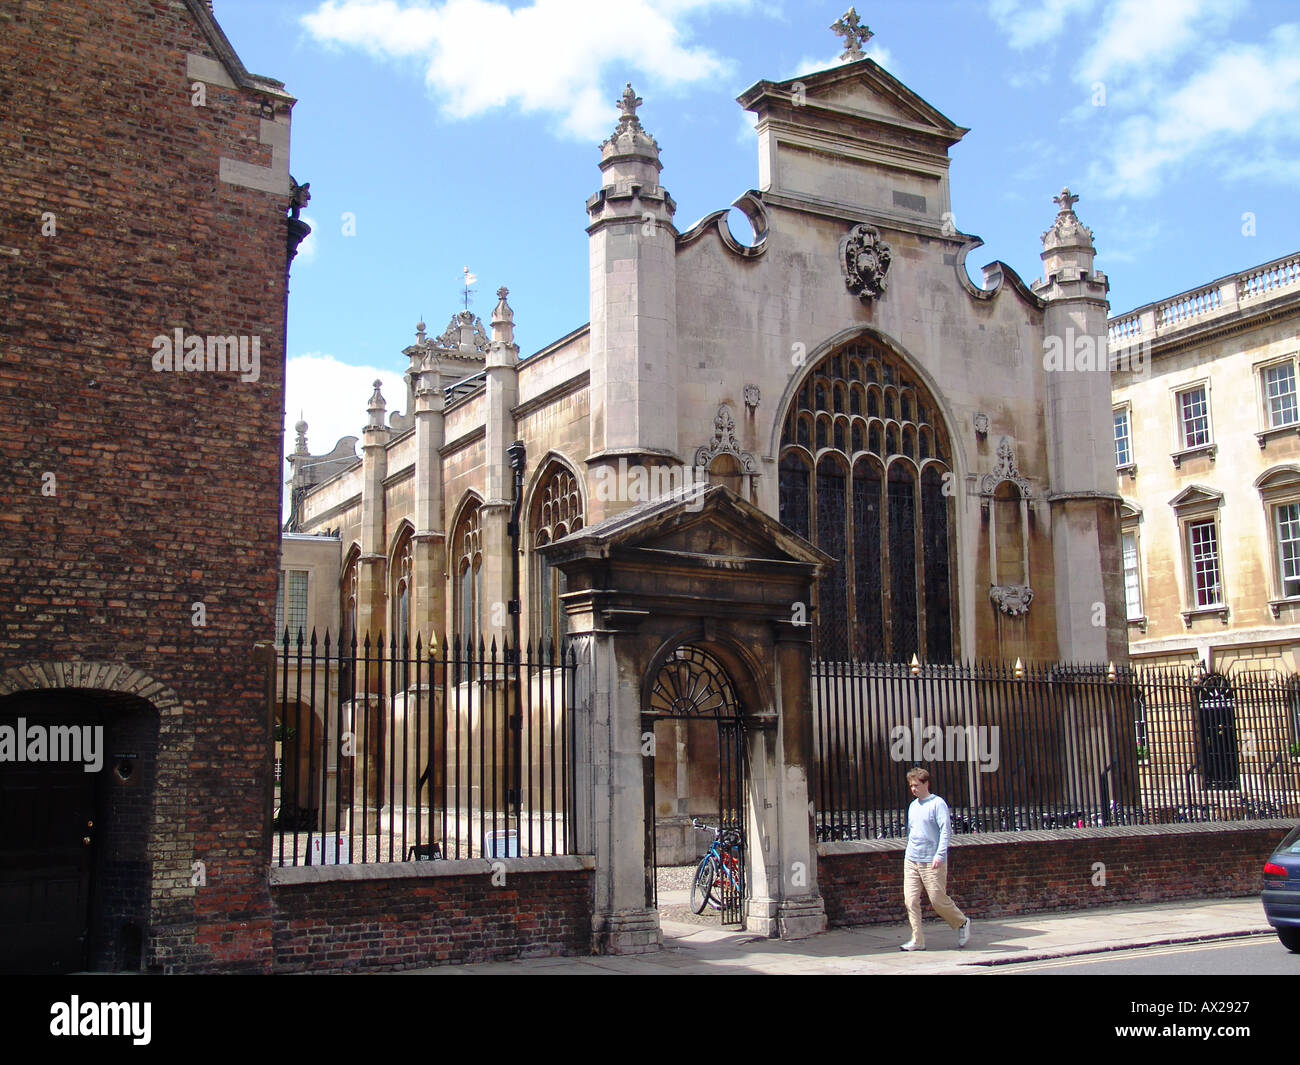 Peterhouse College Cambridge University - Stock Image